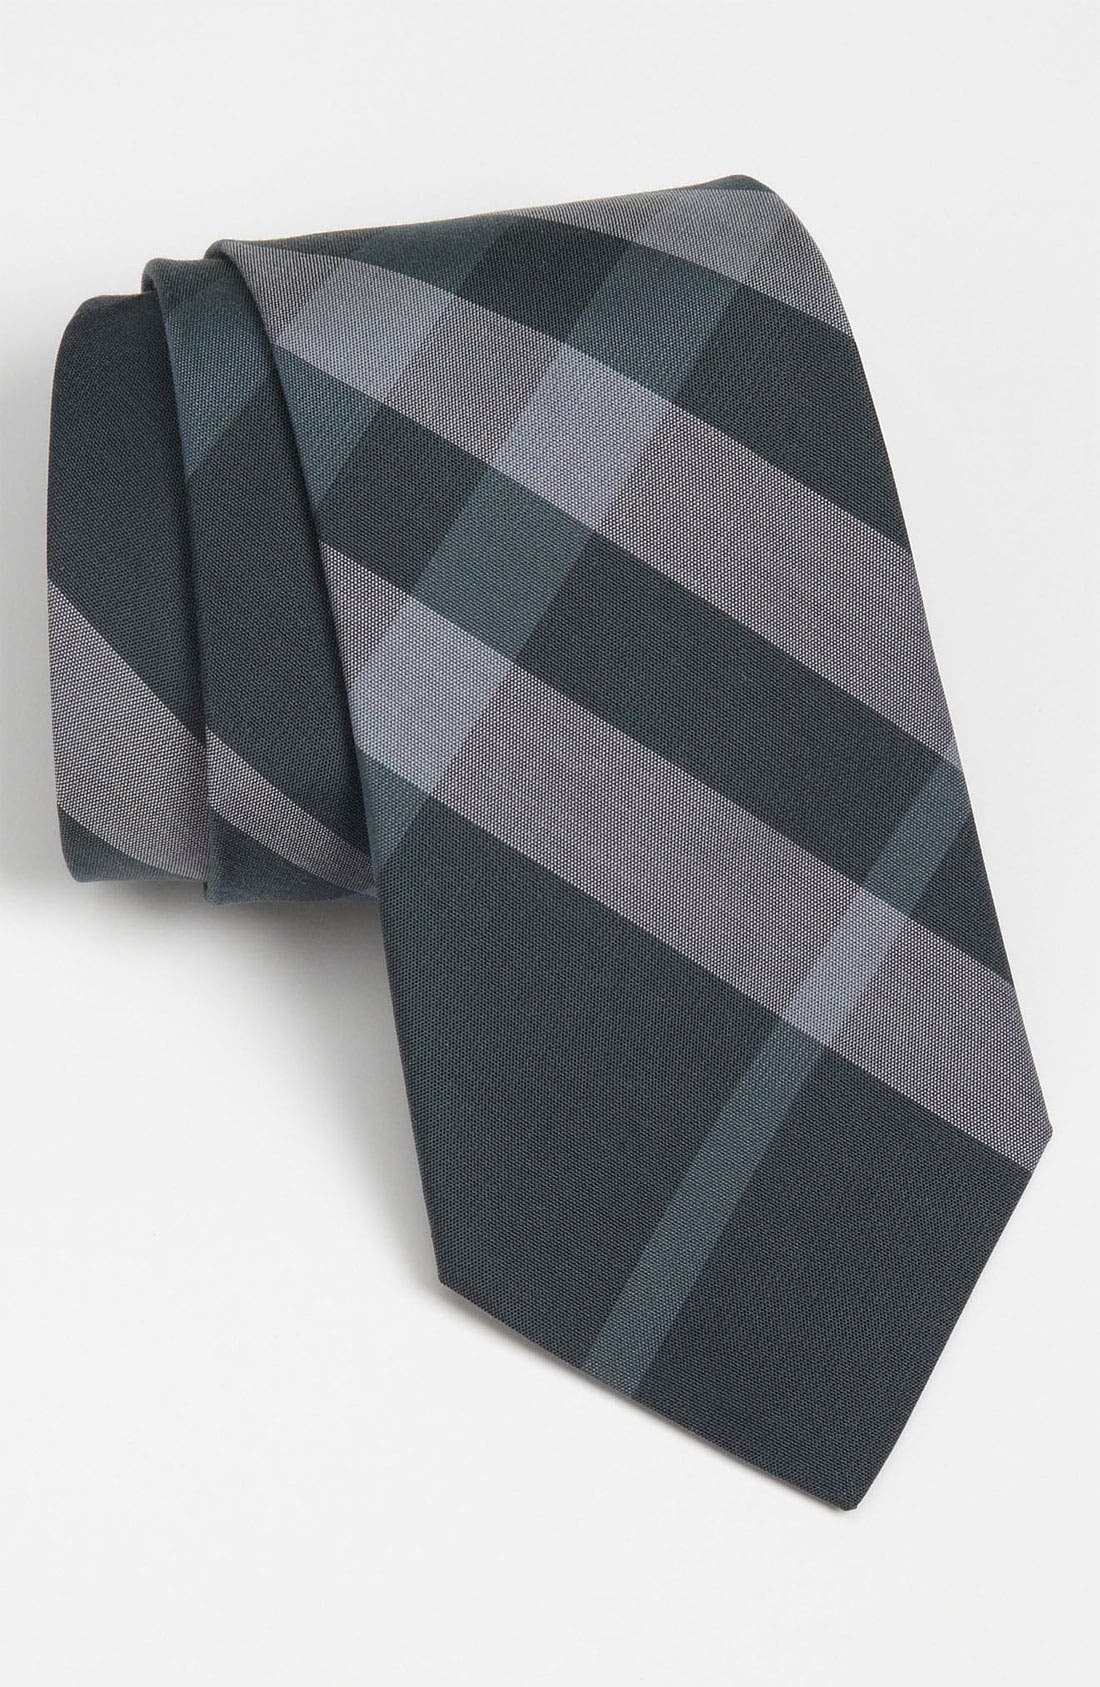 Main Image - Burberry London Woven Tie